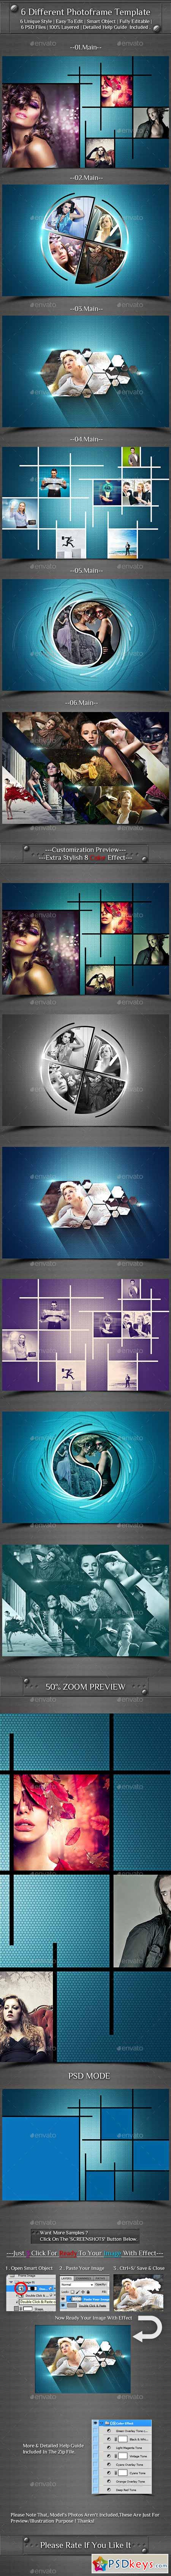 6 Different Photo Frame Template 13227037